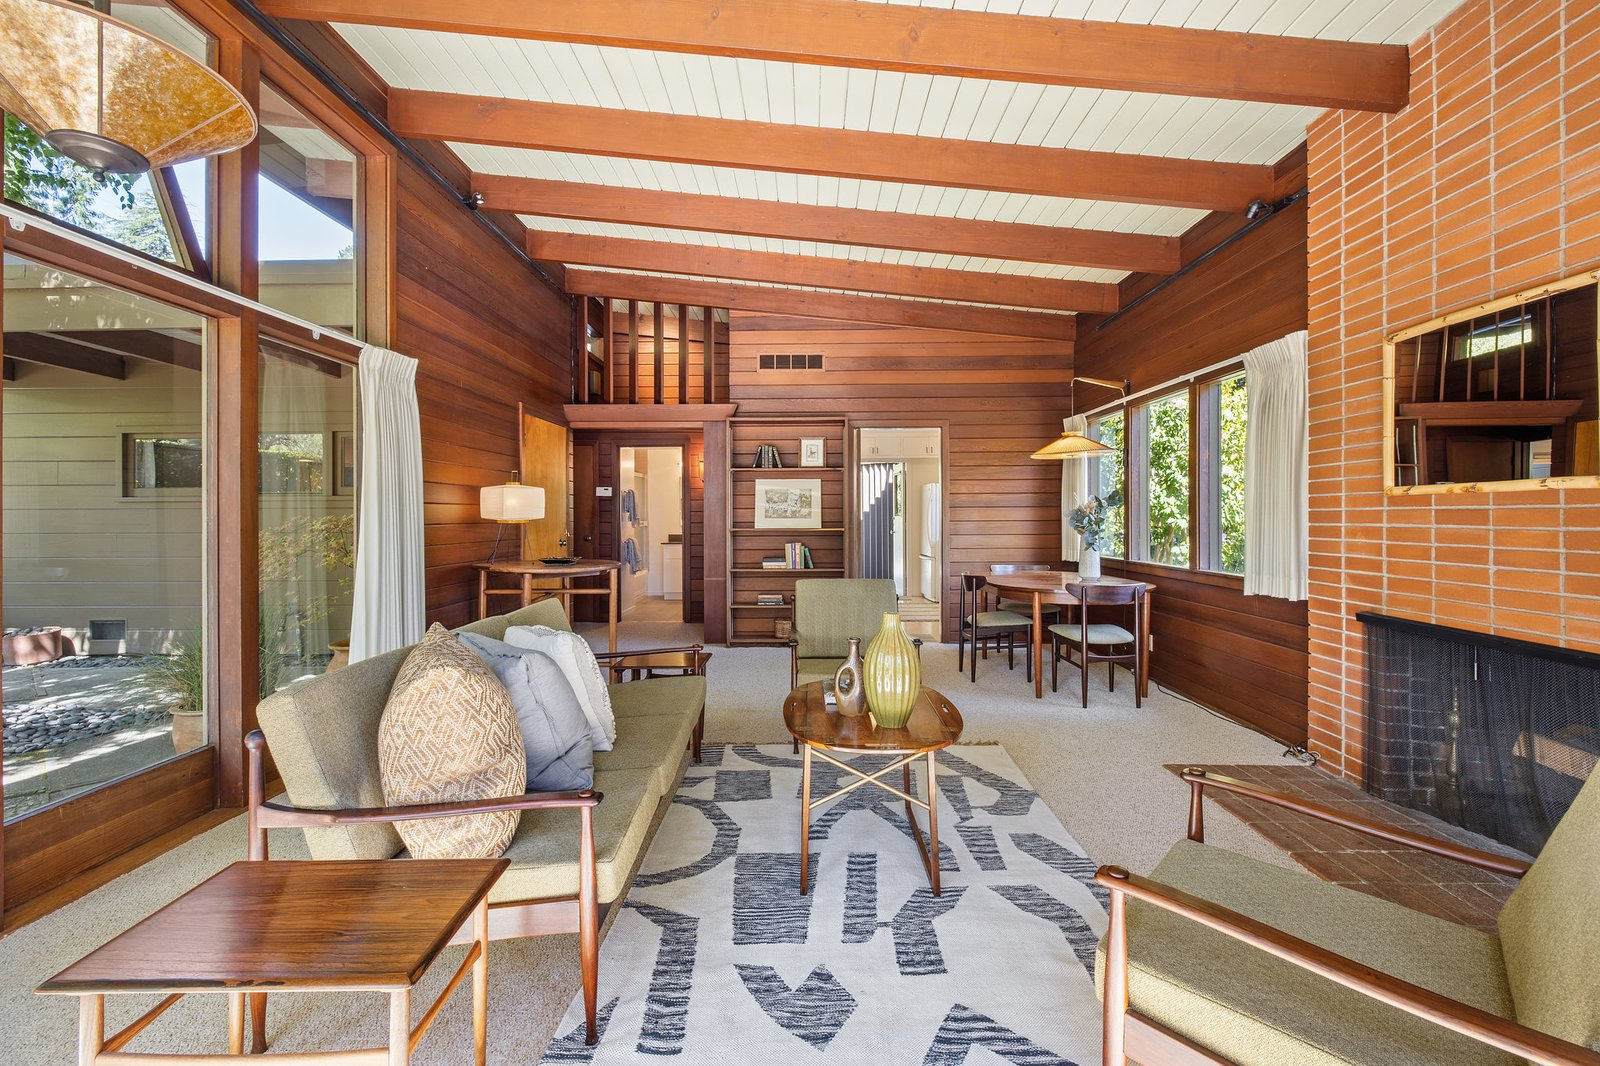 At the back of the living room is a dining area adjacent to the kitchen. The bedroom and bathroom area are accessible from a small hallway to the left.  Photo 18 of 21 in An Impeccable Midcentury Compound in the Berkeley Hills Wants $3.4M